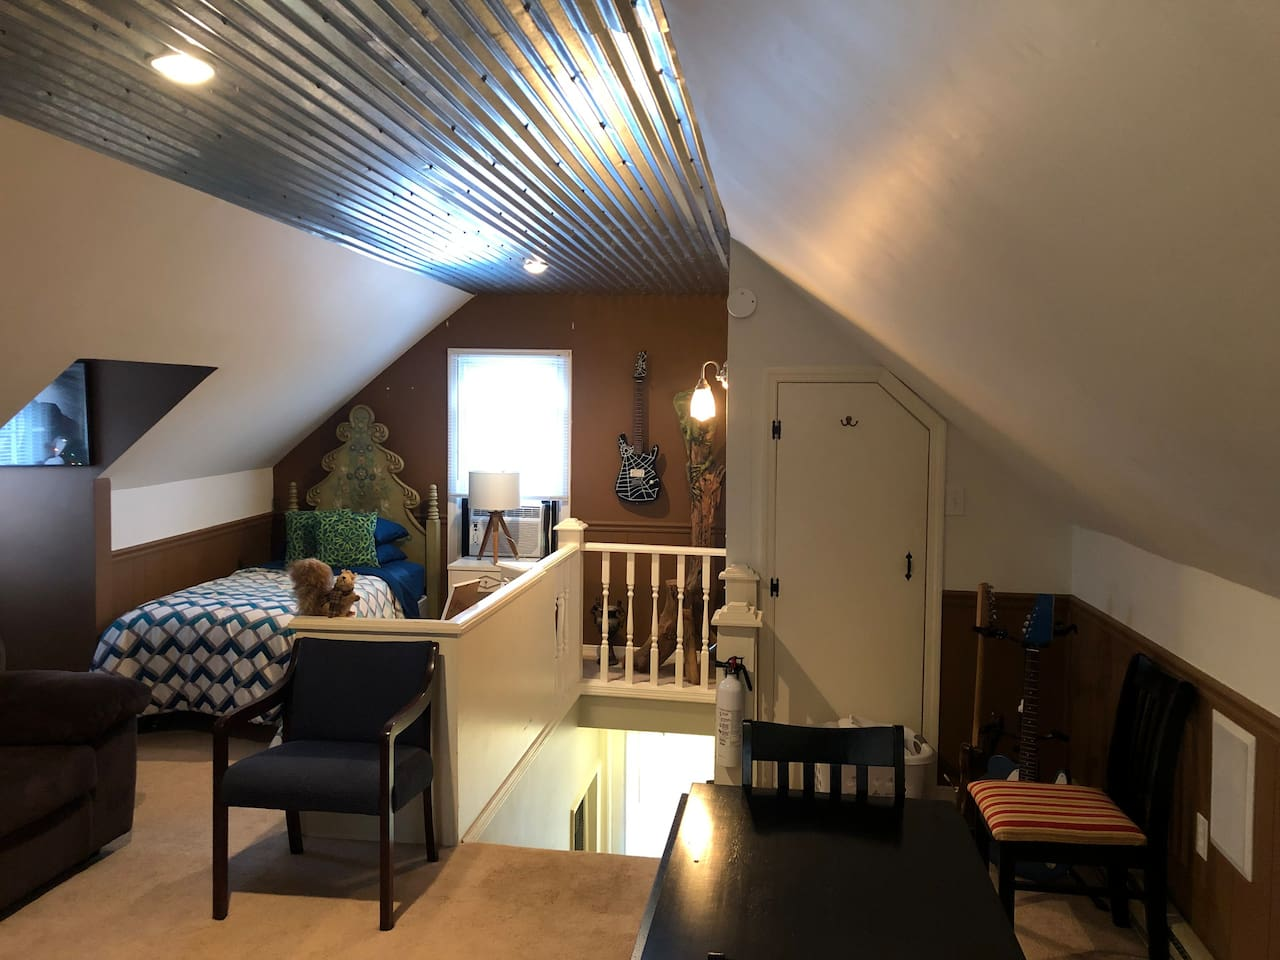 The barn tin ceiling and recessed lighting makes this groovy space full of musical instruments even more cool!